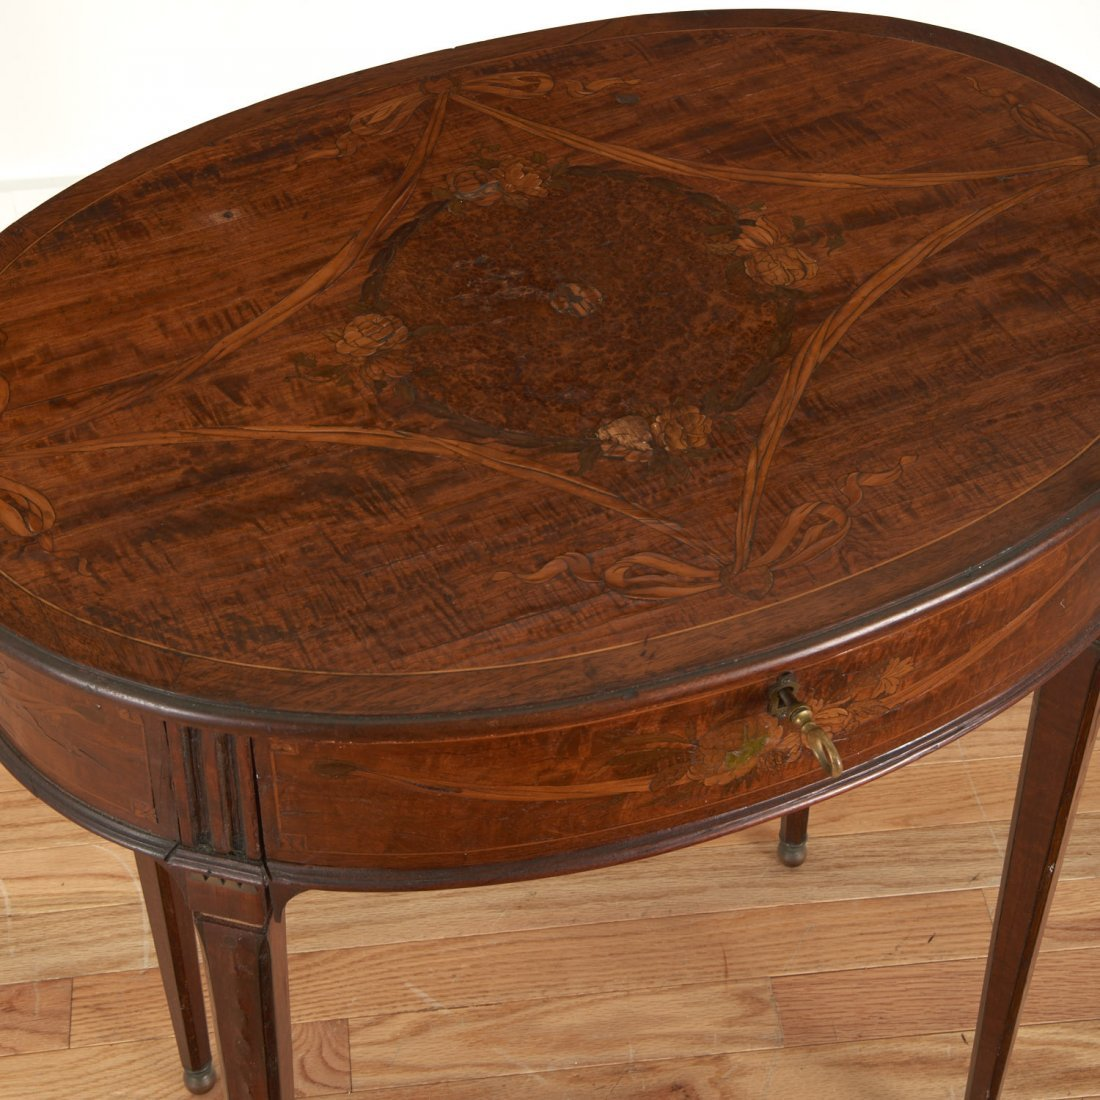 Continental Neo-Classical inlaid walnut side table - 2